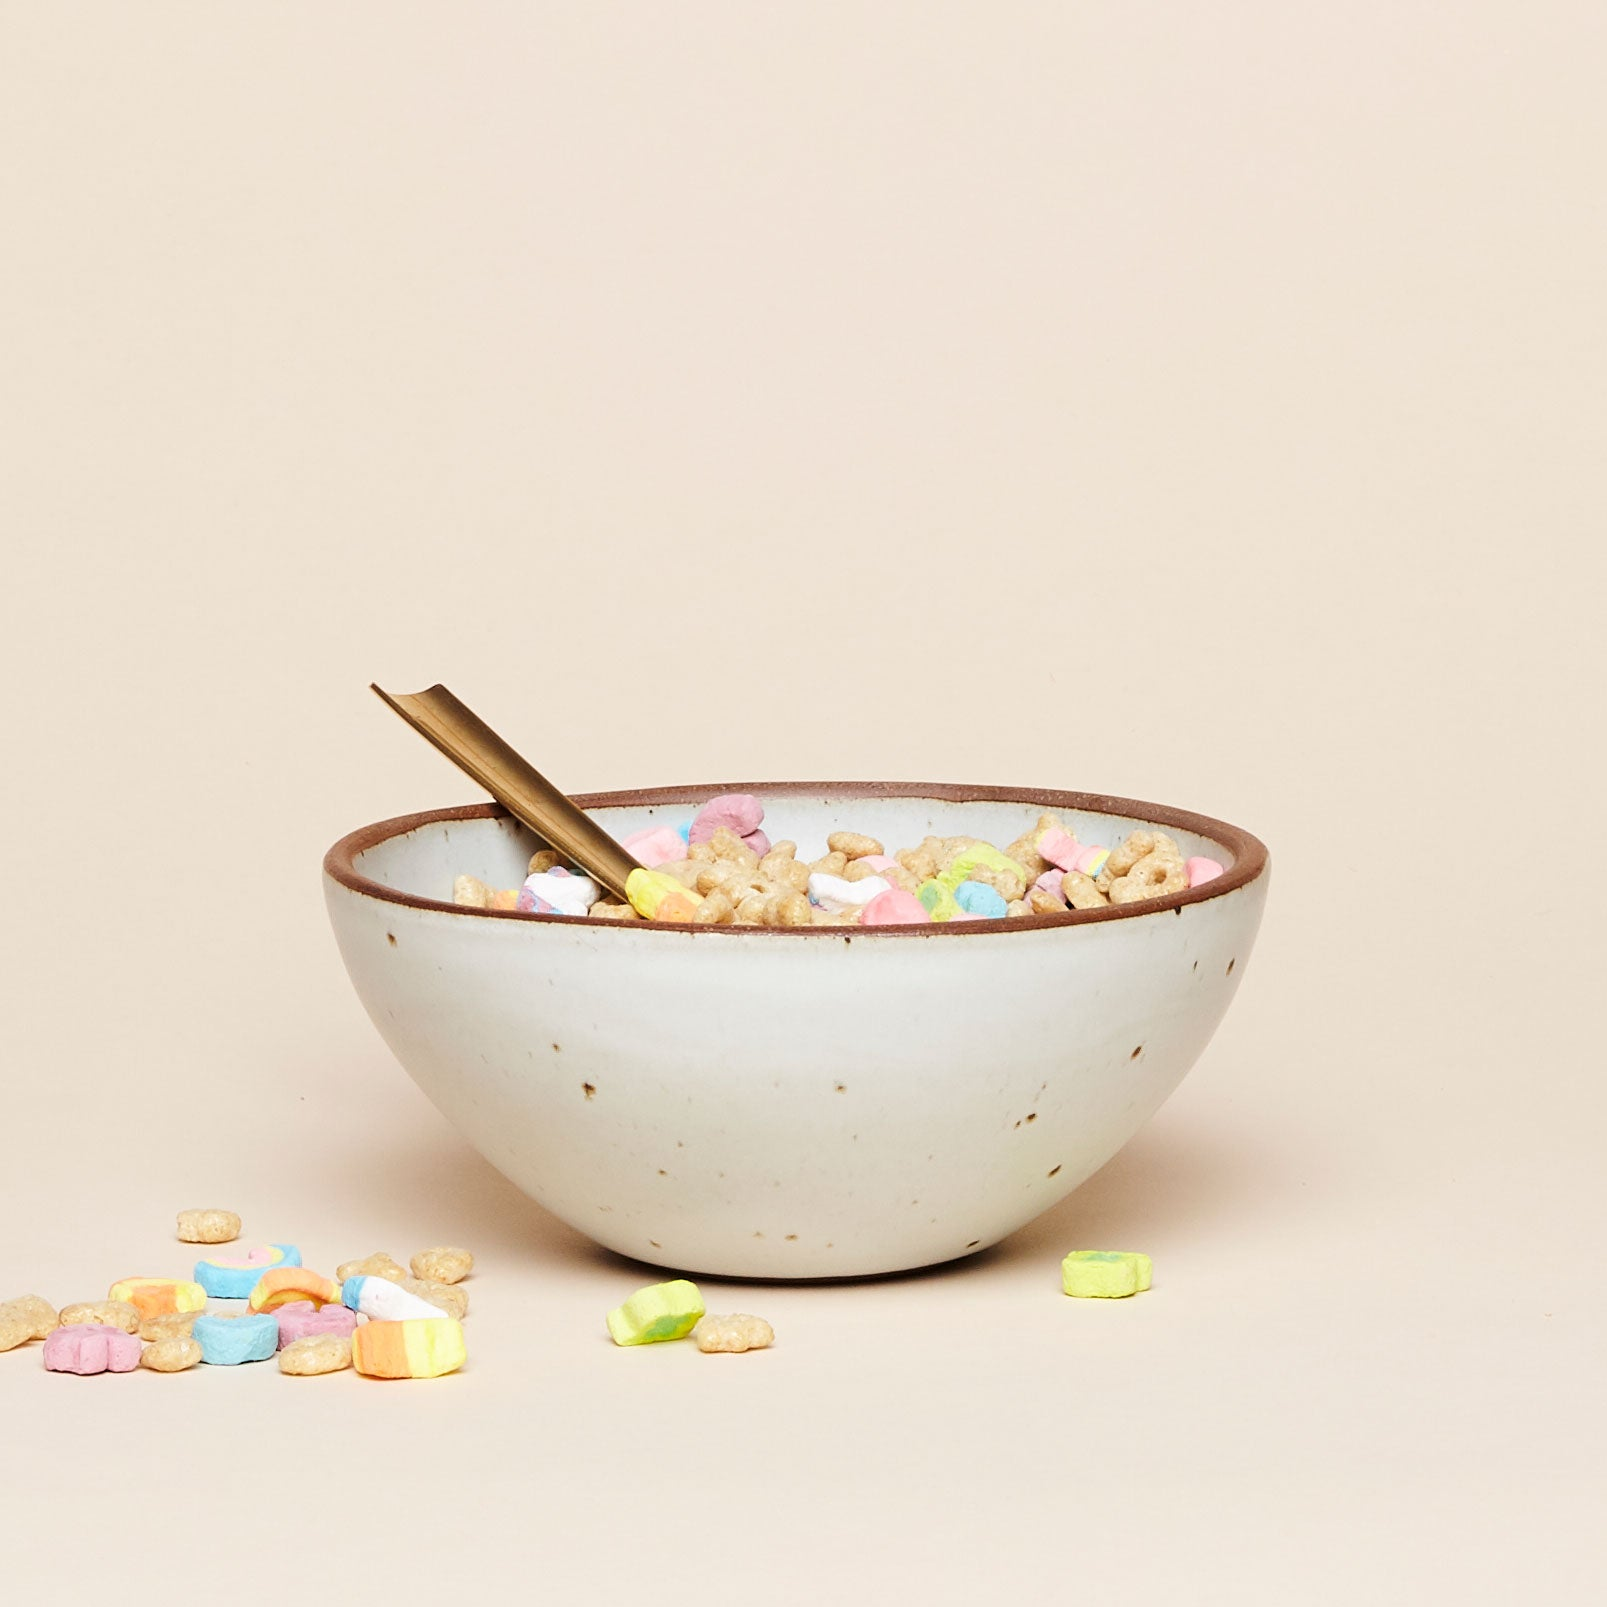 Ceramic bowl by East Fork Pottery in white eggshell glaze. Medium size great for soups and breakfast cereal.